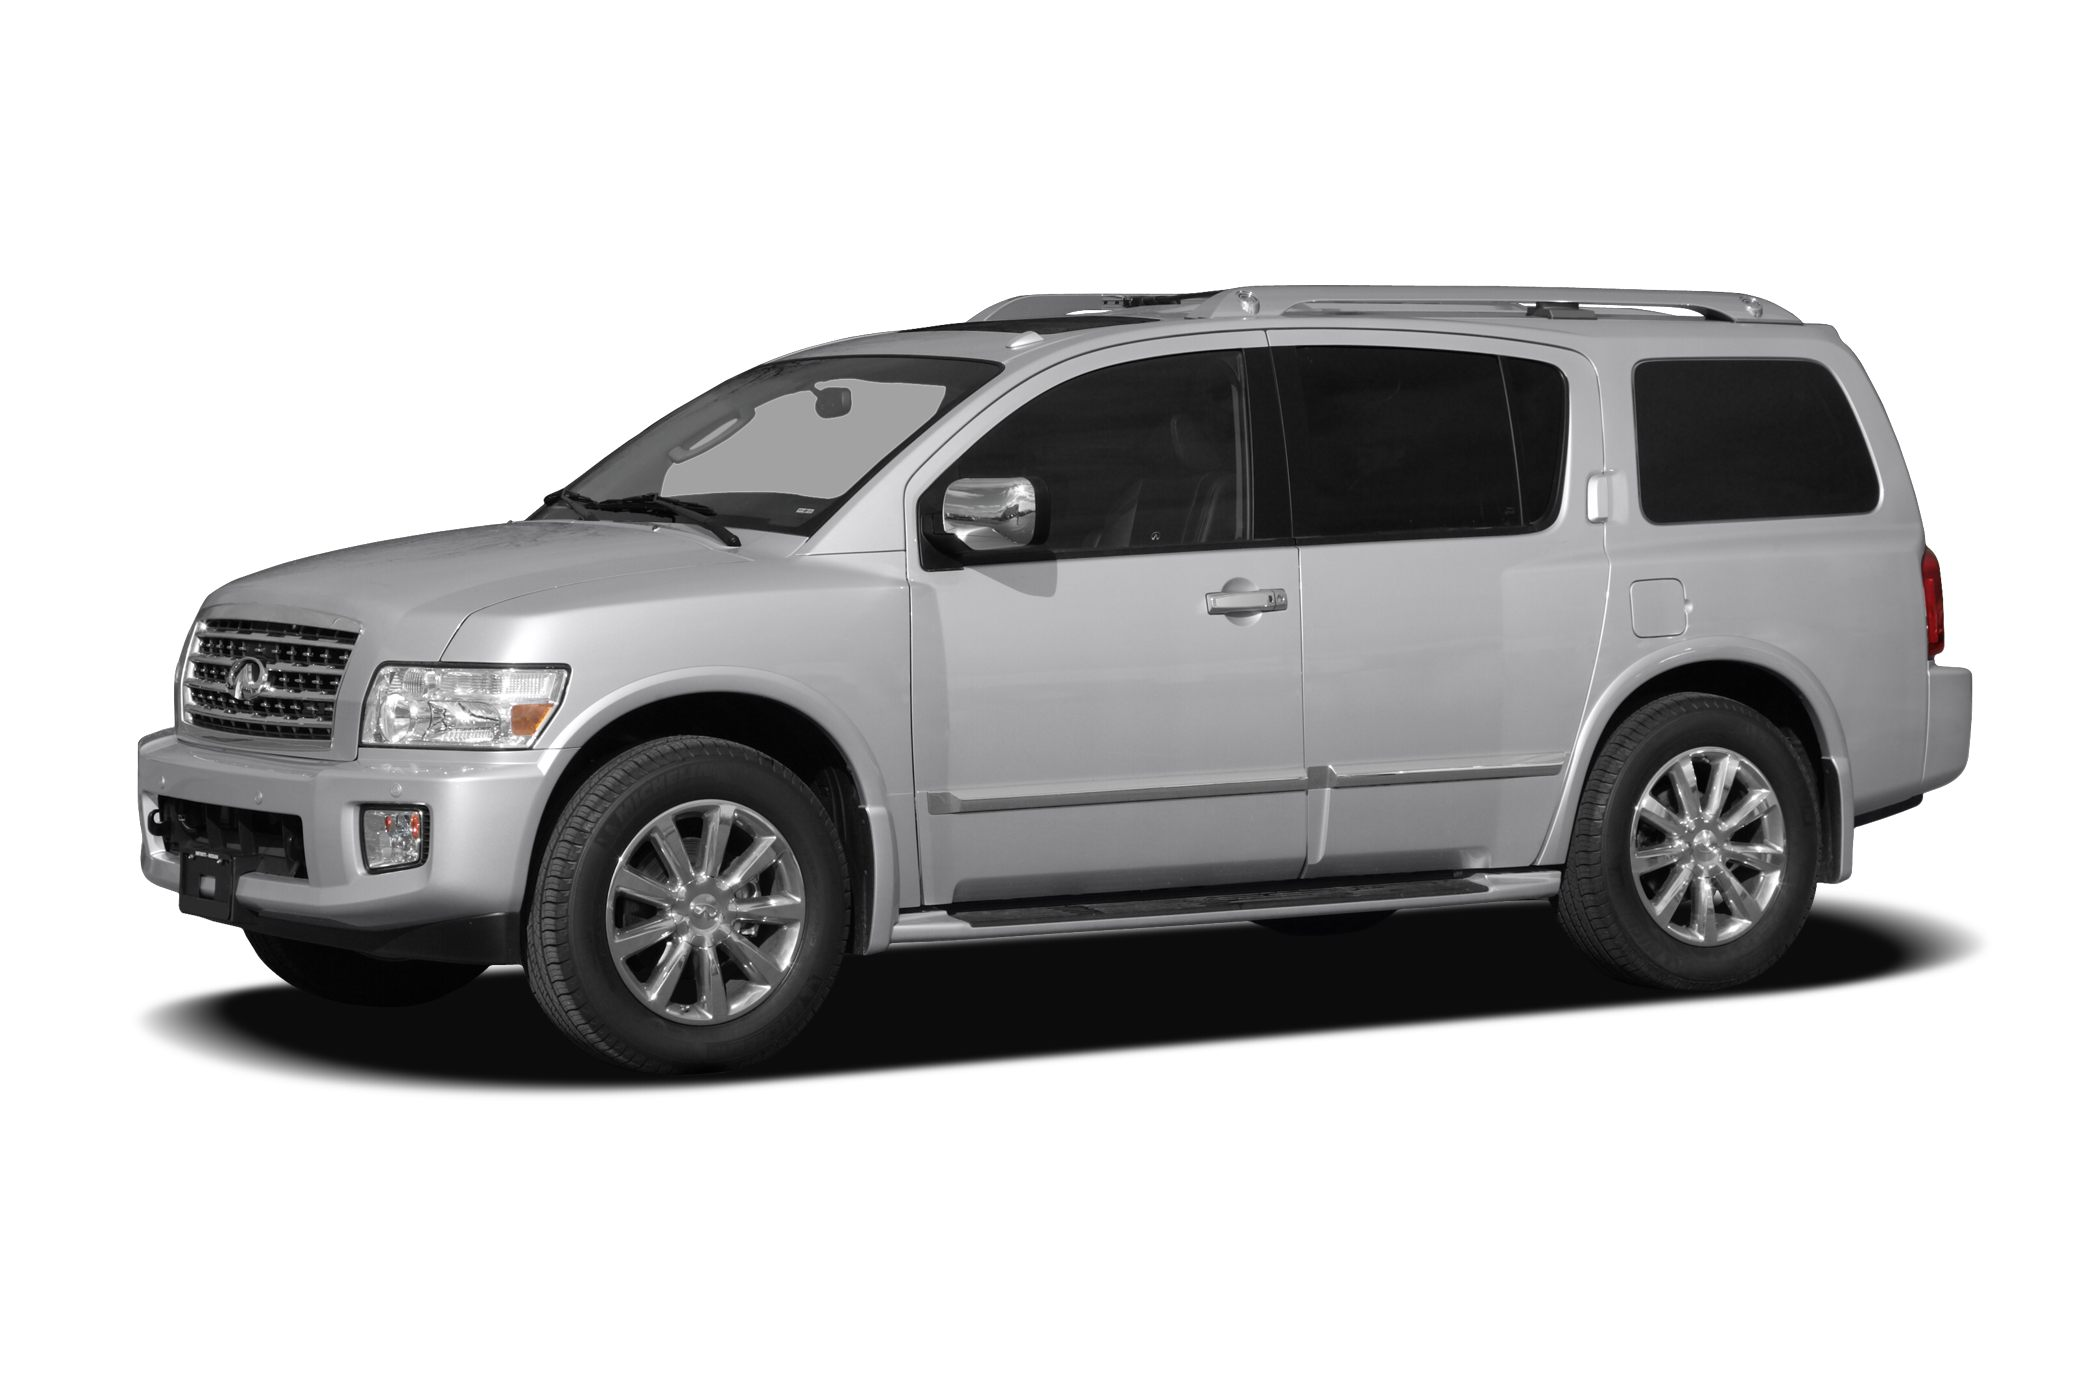 2008 Infiniti QX56 SUV for sale in Flowood for $19,977 with 99,034 miles.